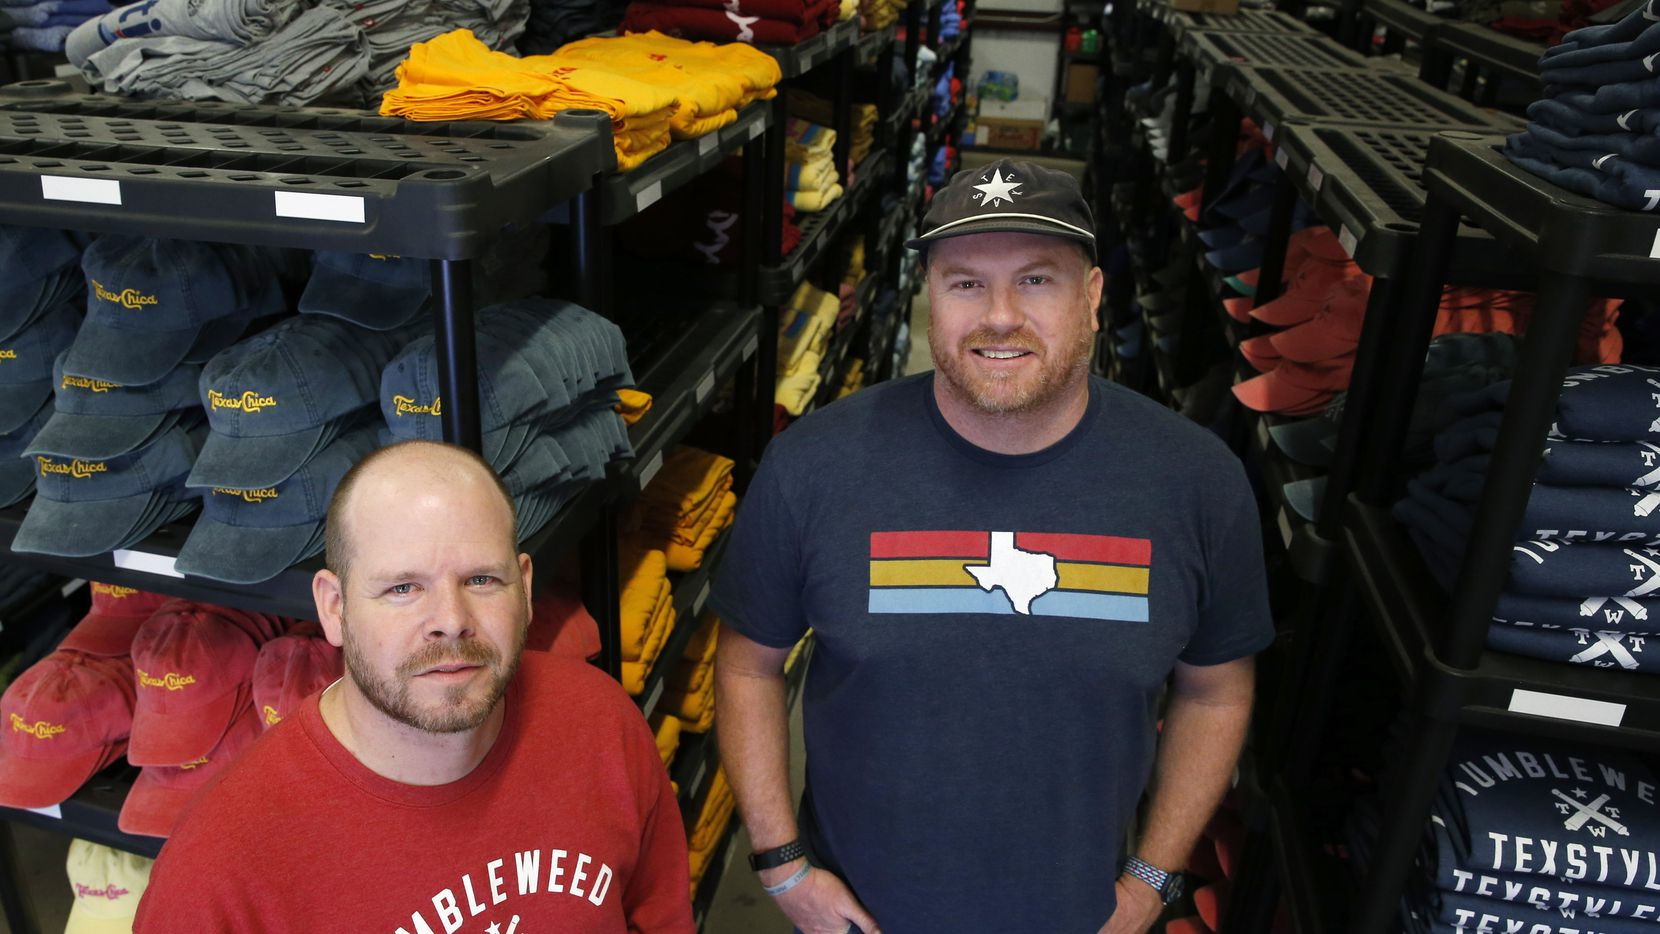 Brian Wysong (left) and Jeb Matulich started Tumbleweed TexStyles with a $700 investment. It's on track to sell $1.3 million in Texas-themed products this year.